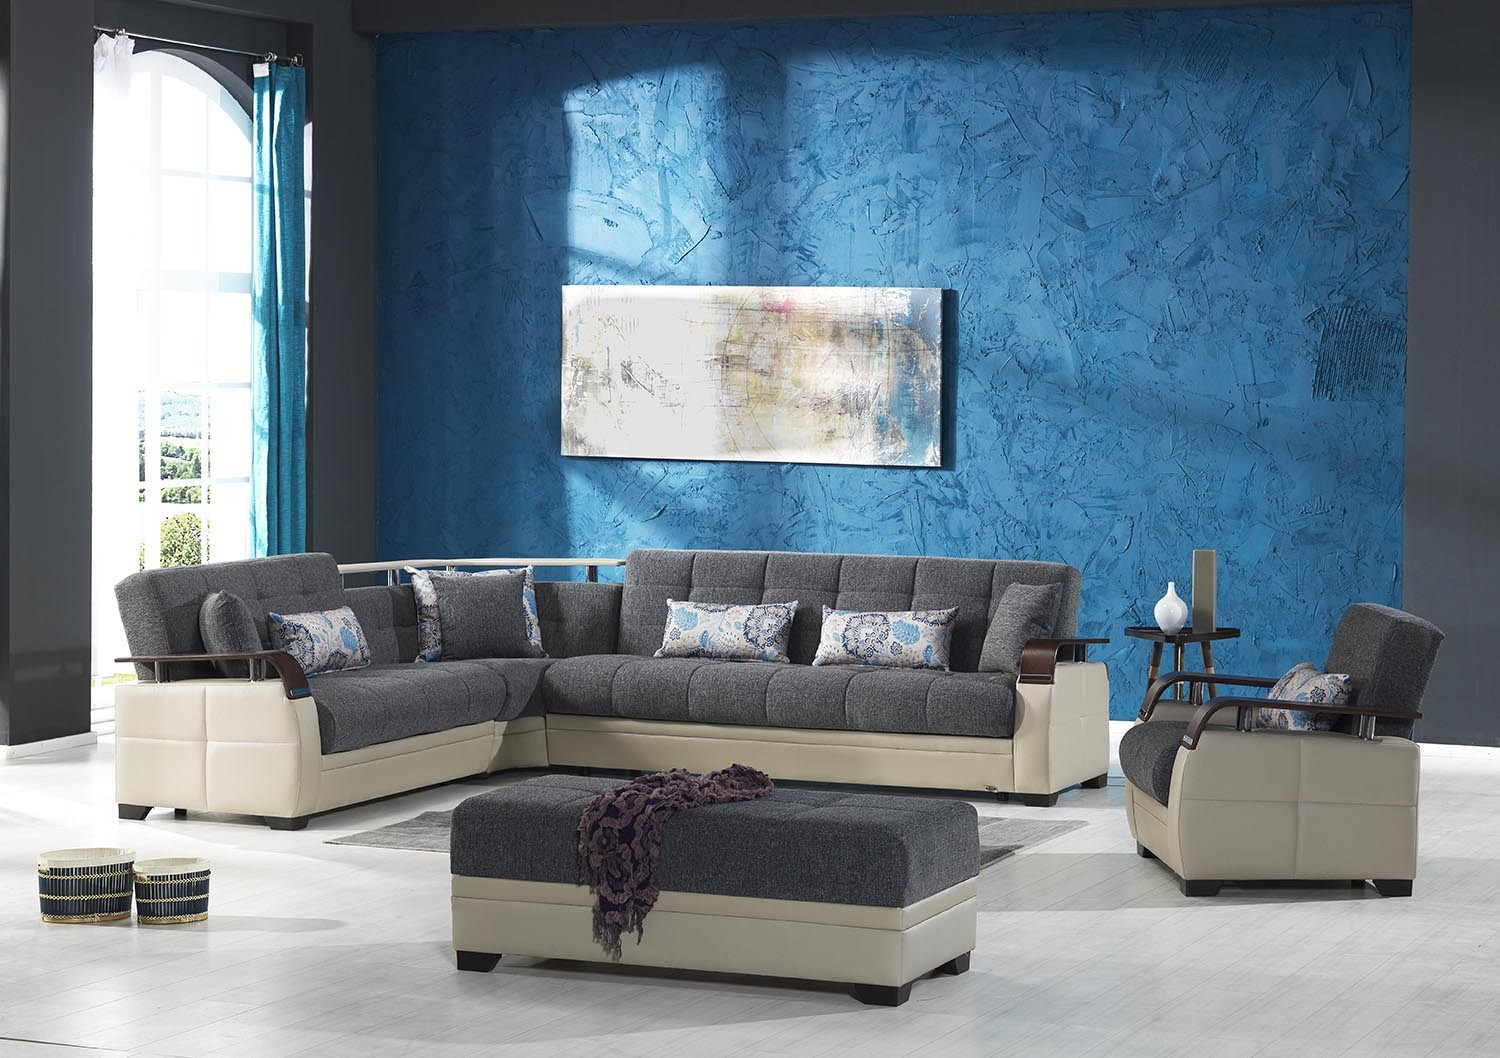 Dancing Sofa Bed Sectional In Nordby Gray Fabric